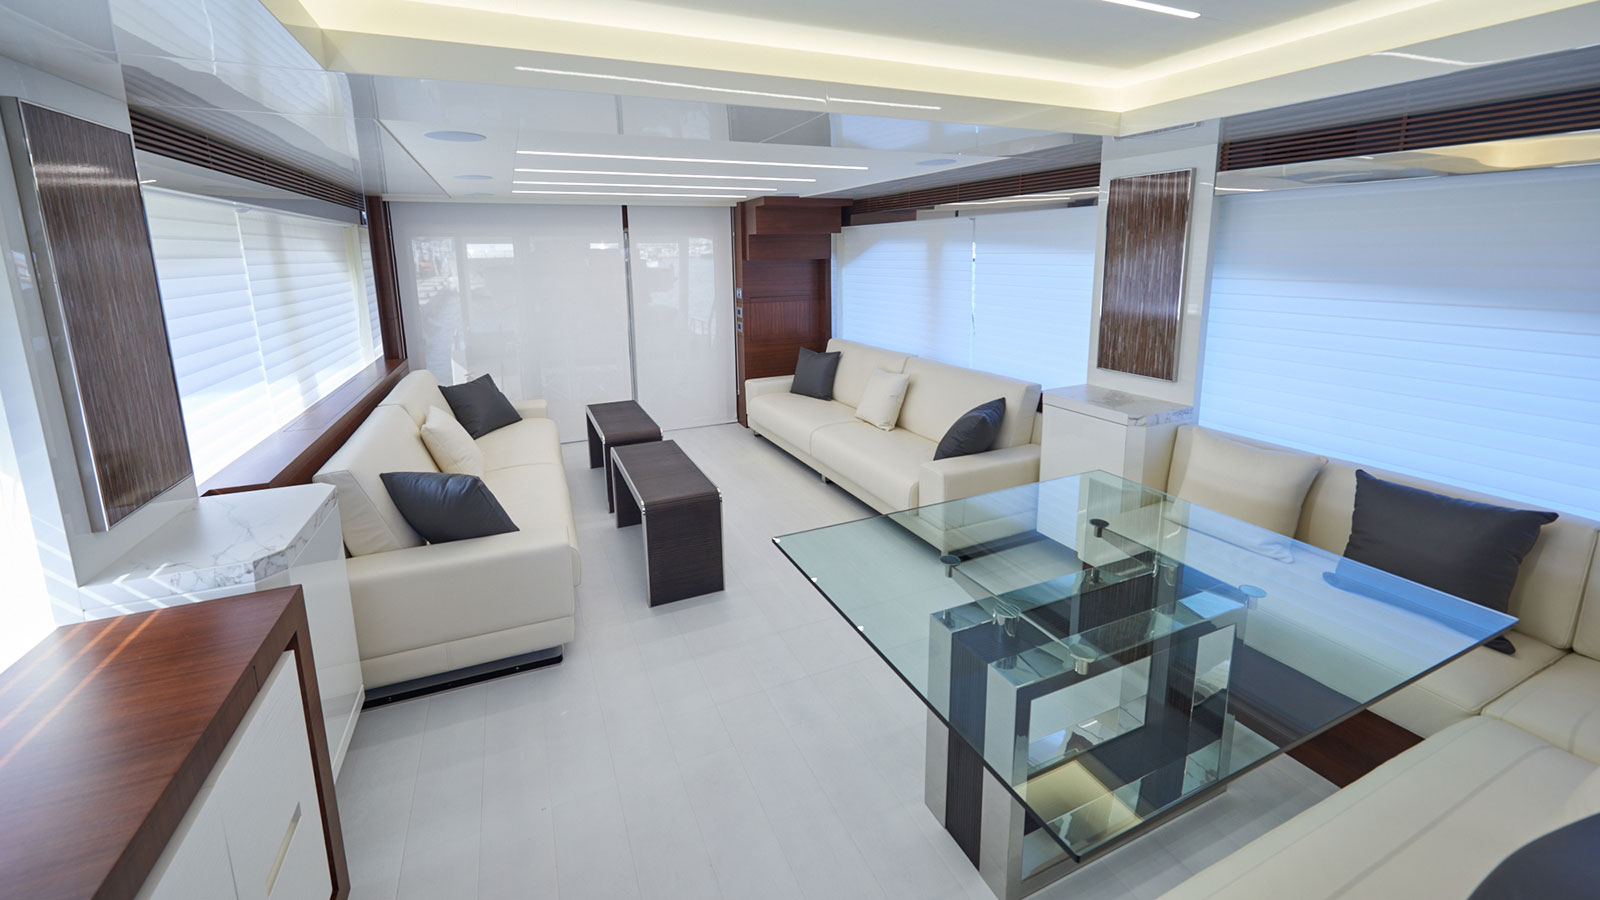 the-saloon-of-the-astondoa-80-glx-yacht-17